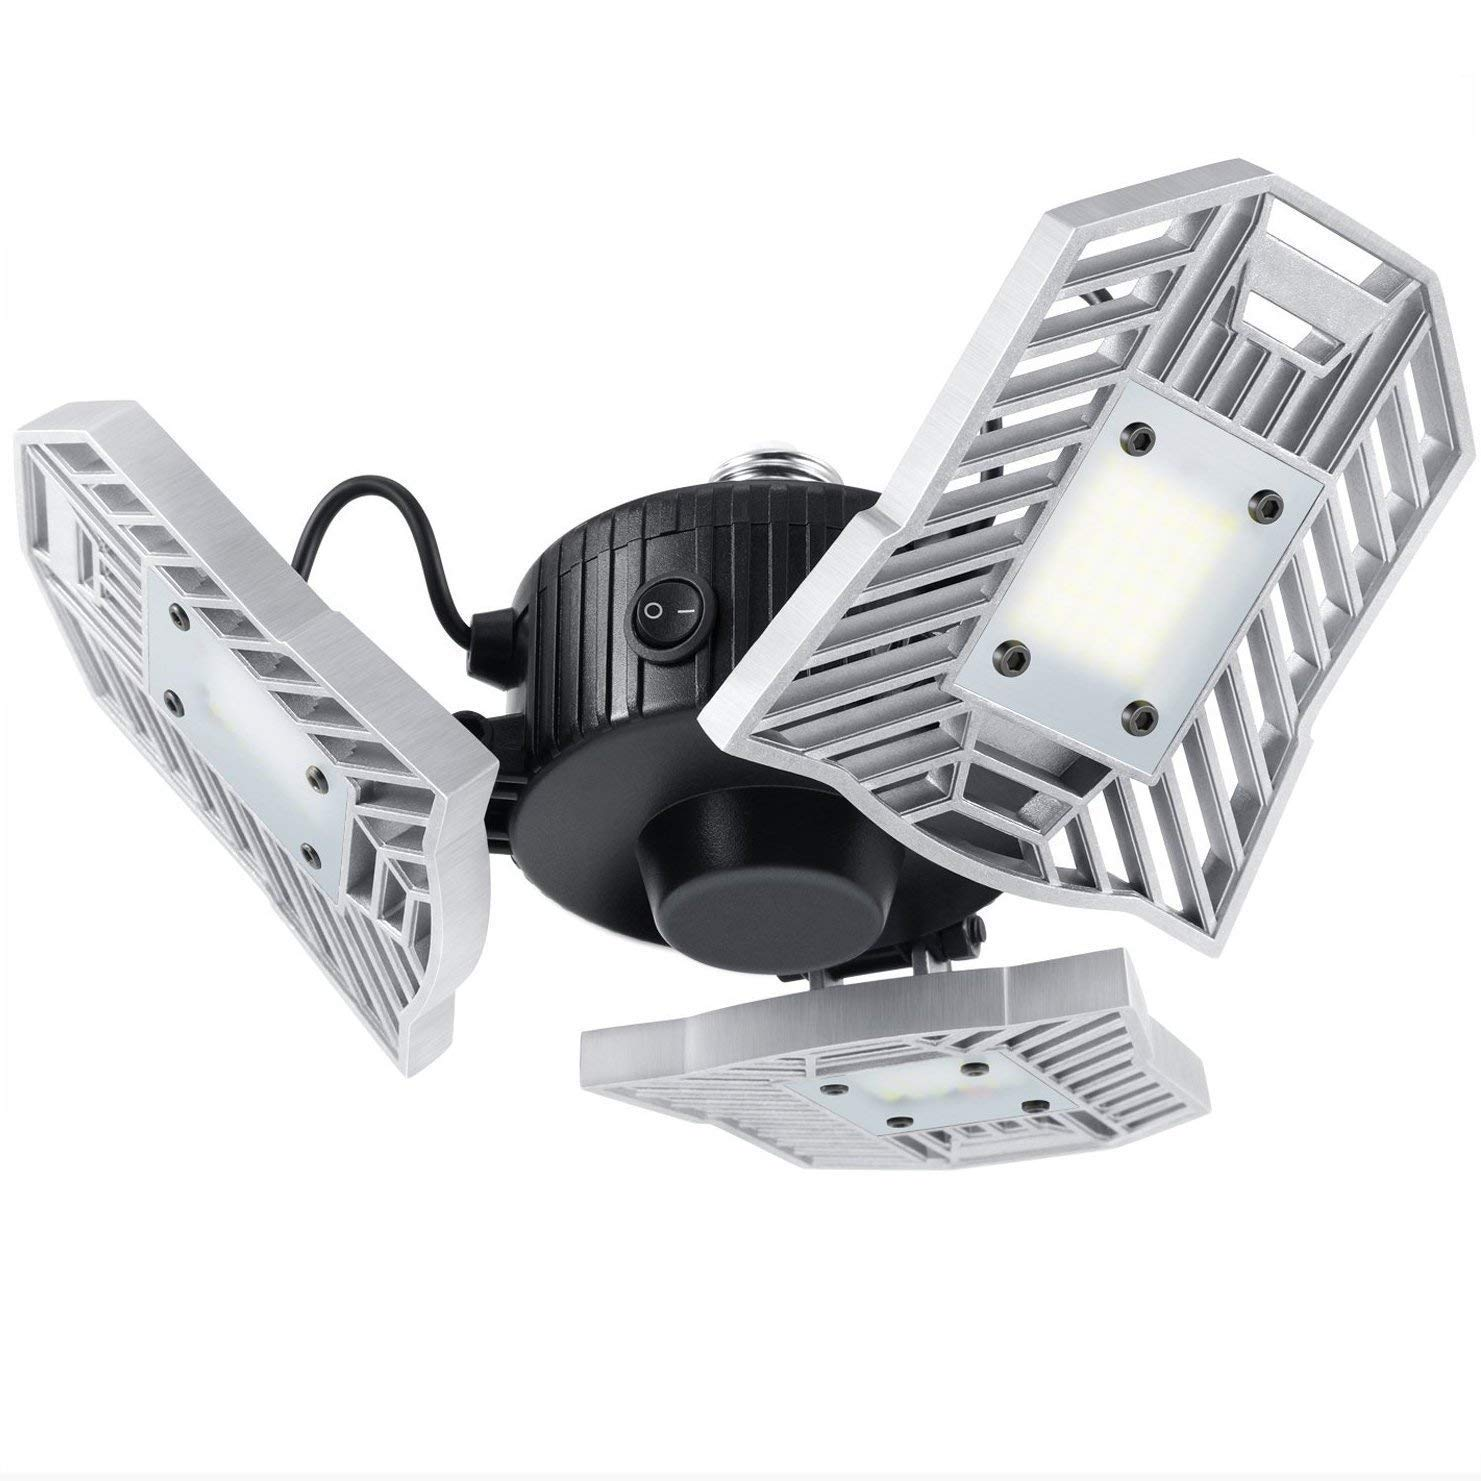 Motion-Activated LED Garage Lighting, 6000 lm Security Ceiling Light with Built-in Motion Detector, 6000K Daylight